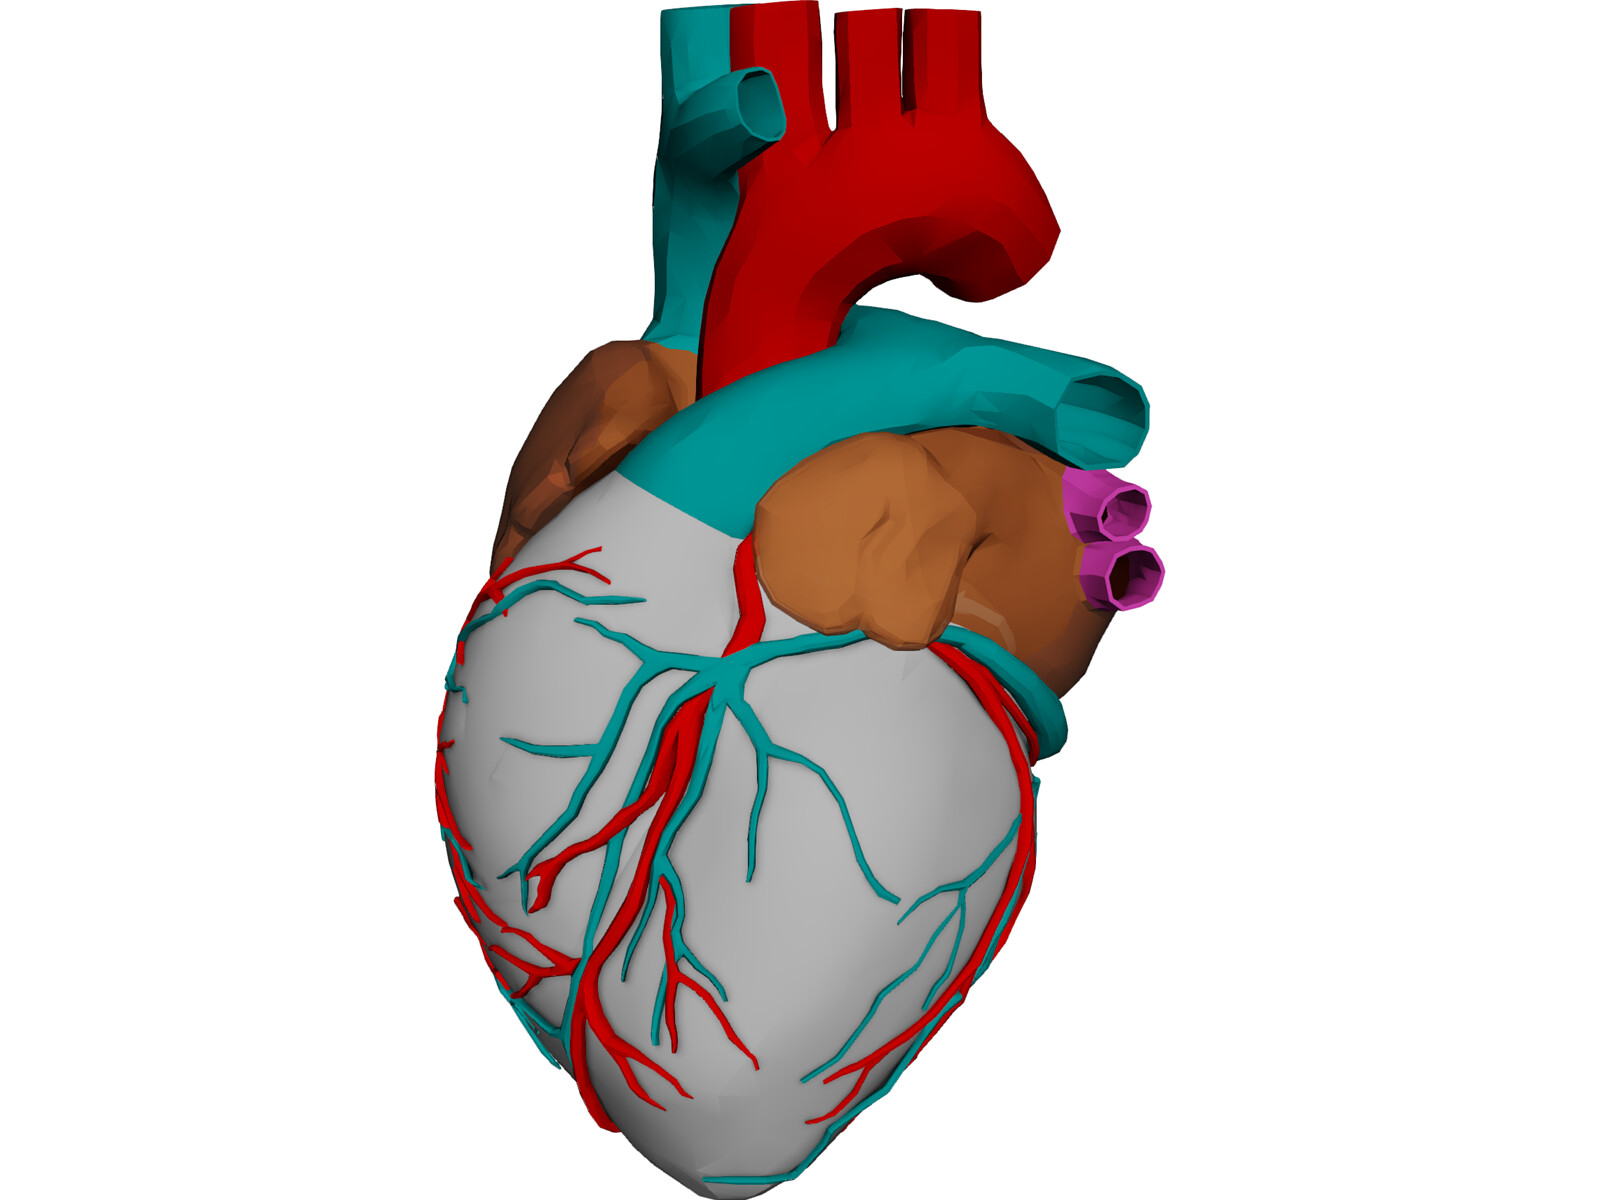 3d heart anatomy software